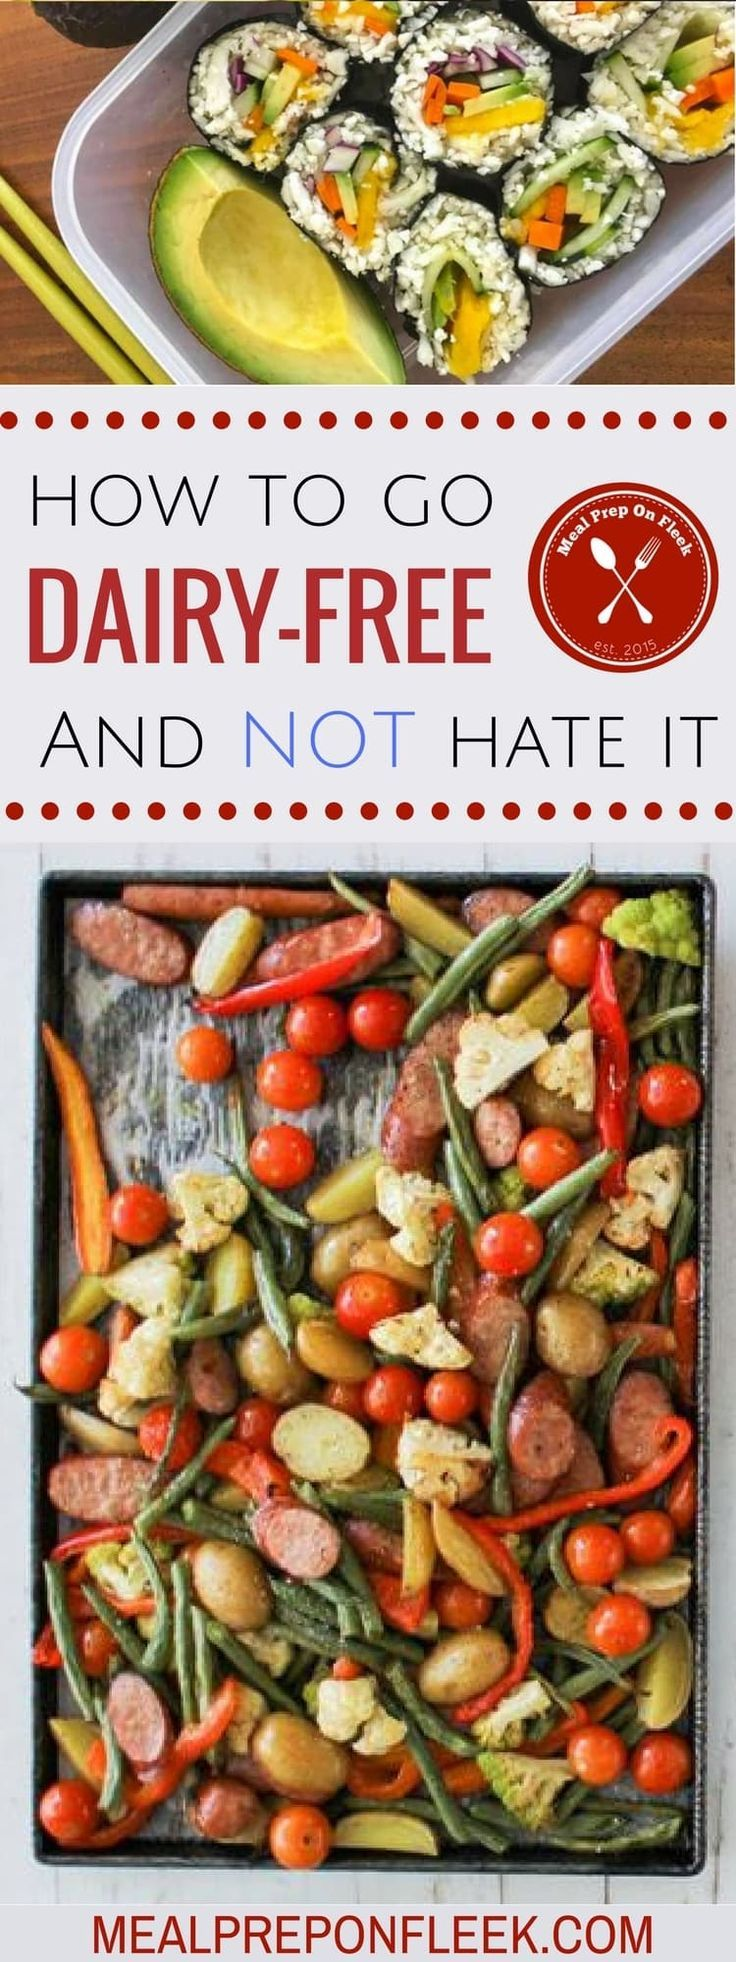 How To Go Dairy Free And Not Hate It - Meal Prep on Fleek